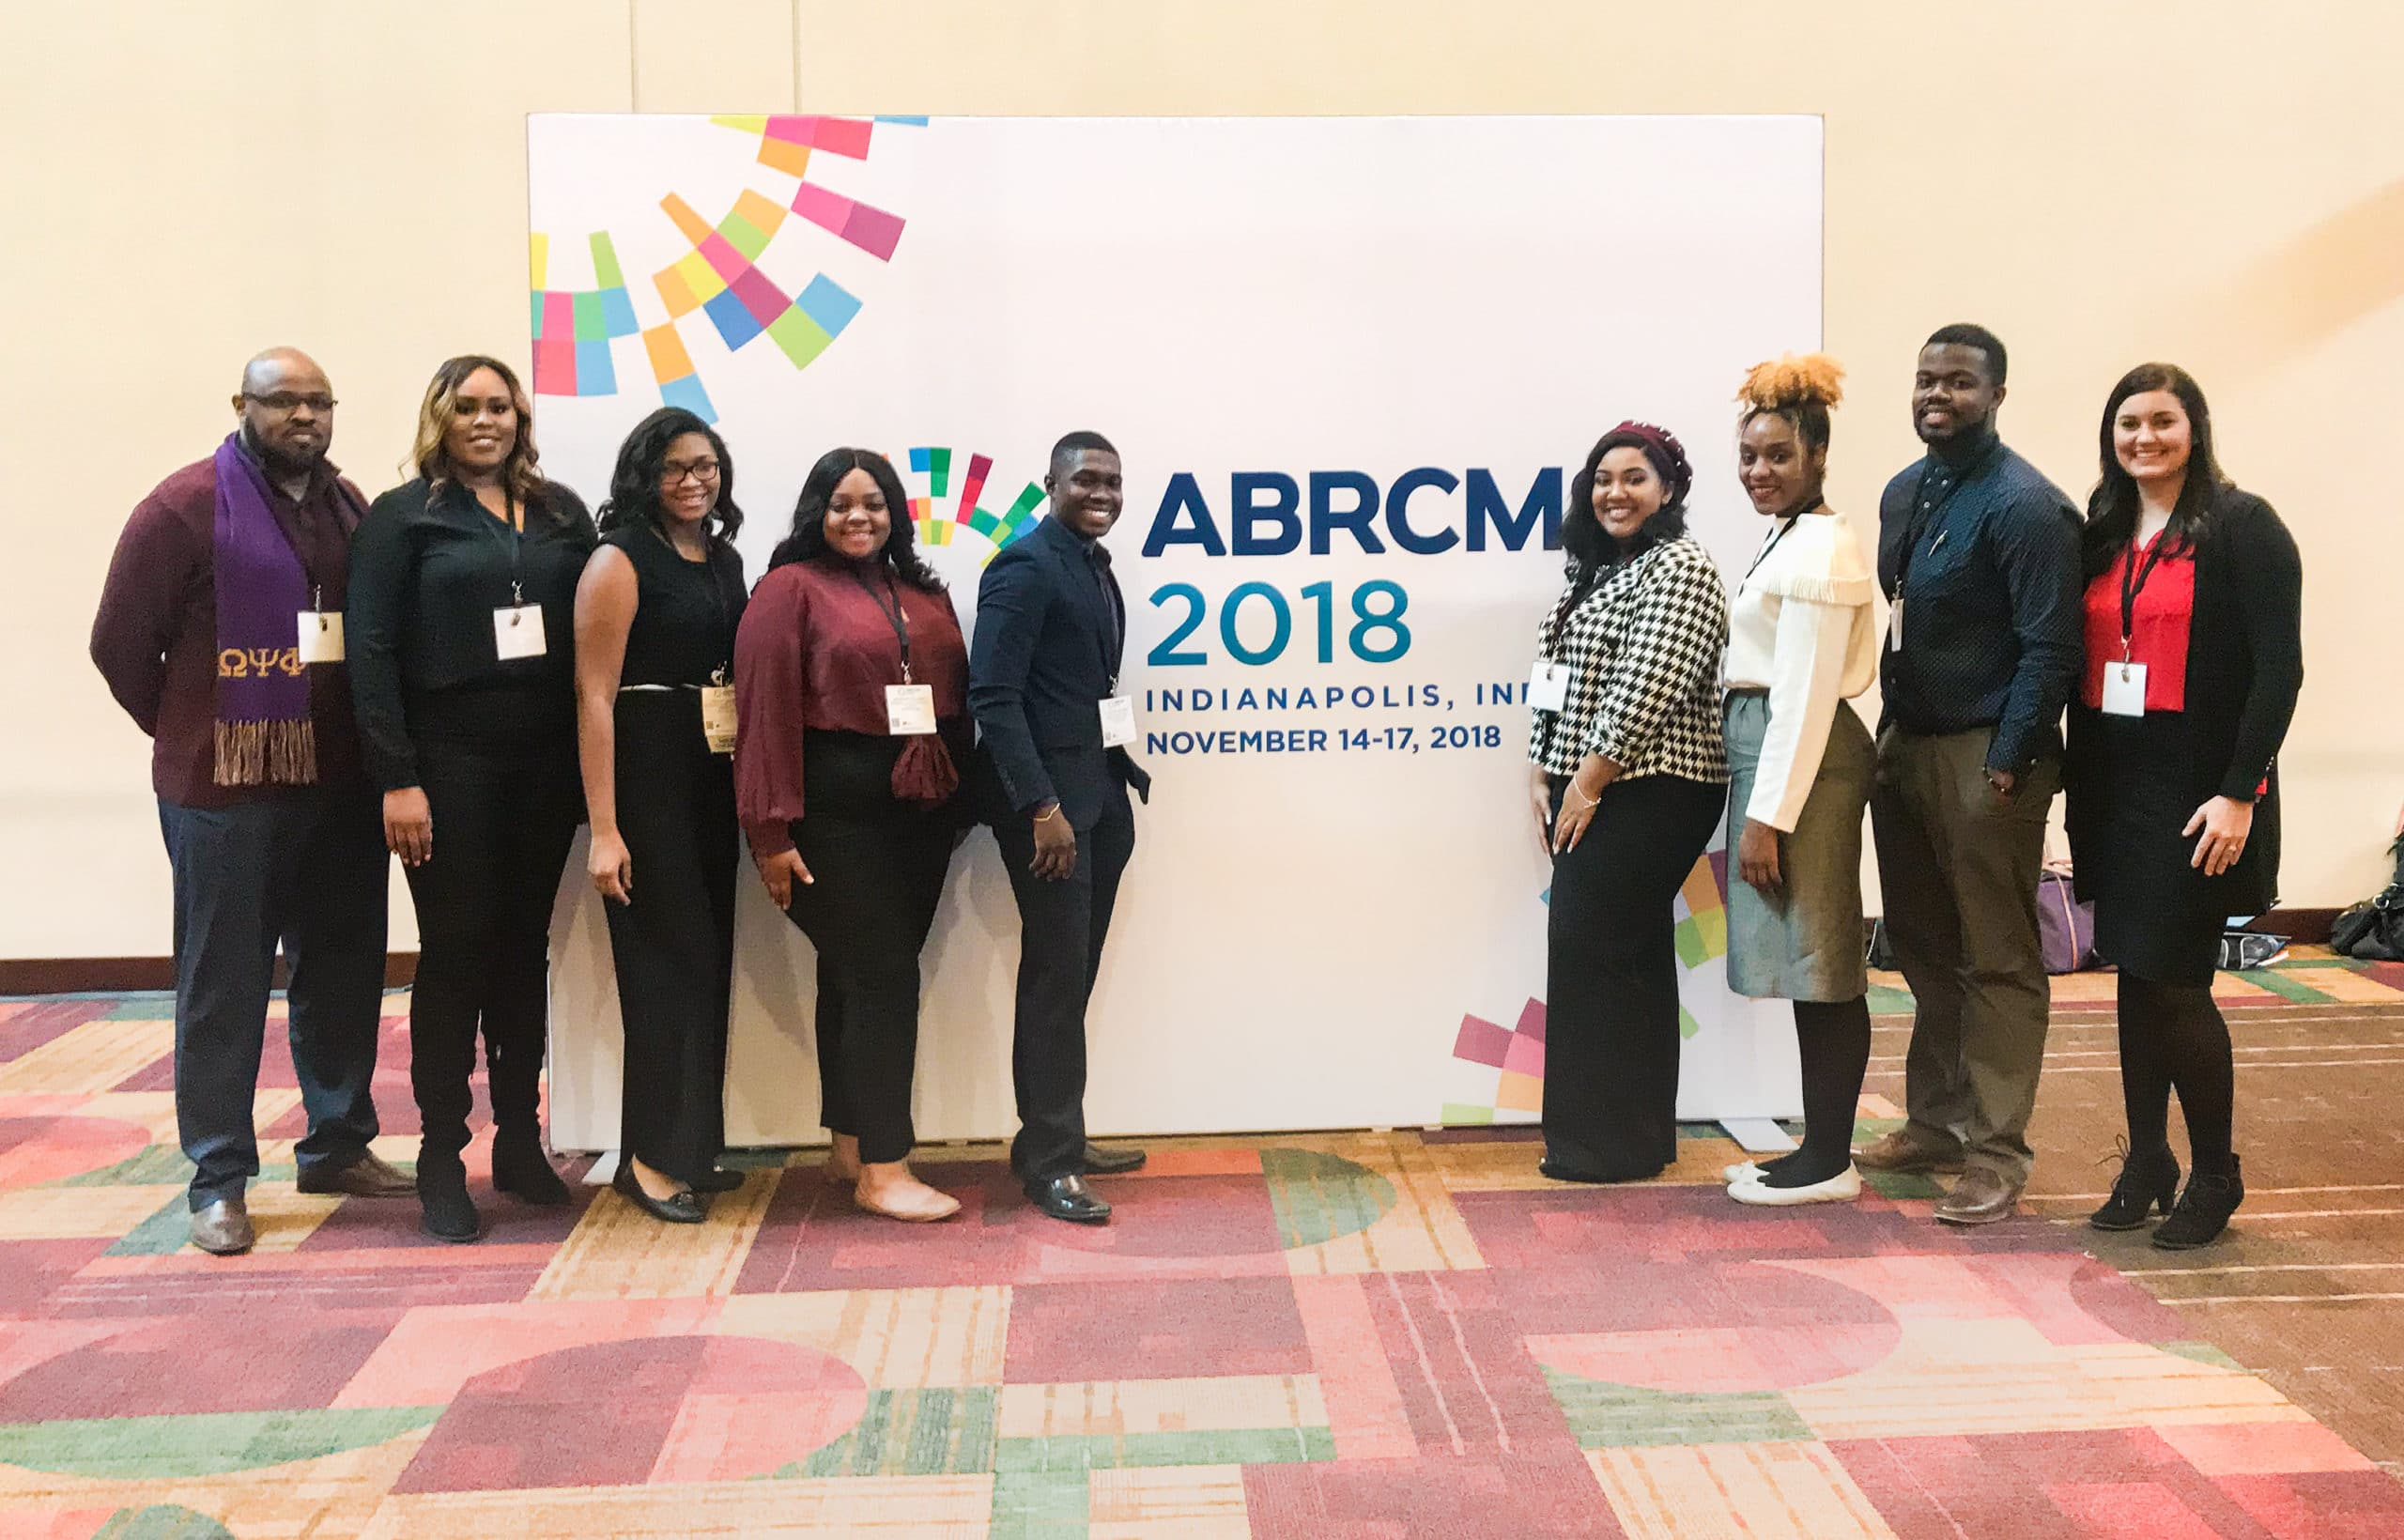 Mississippi INBRE Represented at ABRCMS